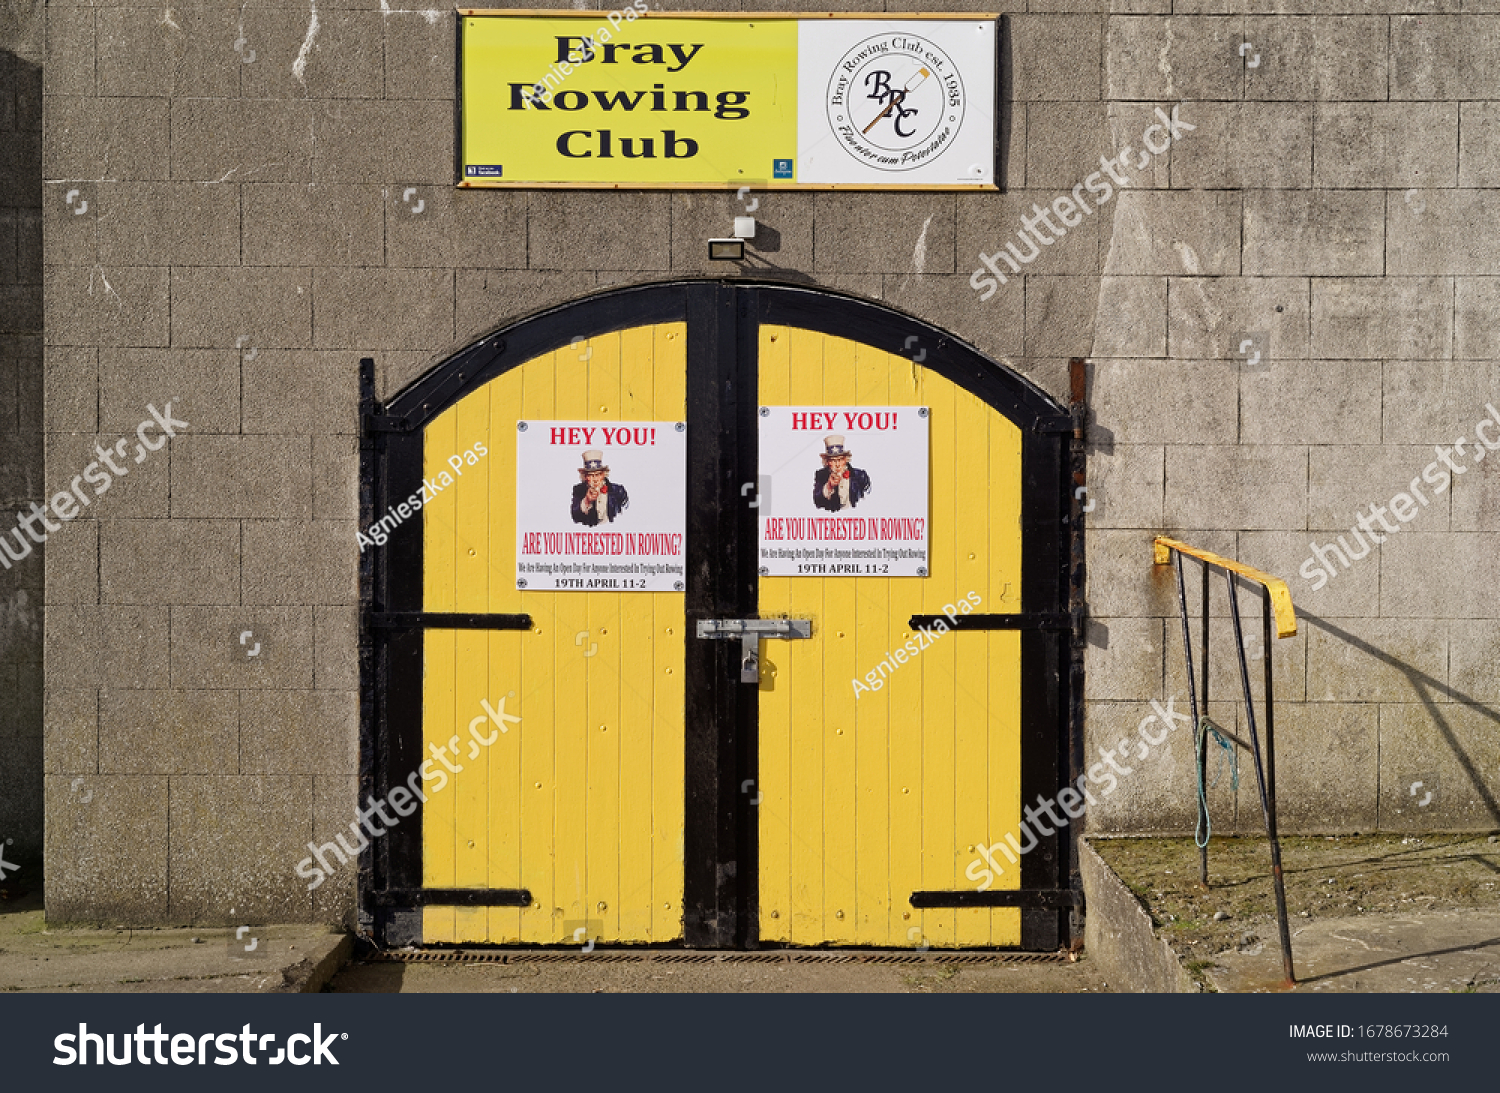 BRAY, CO. WICKLOW, IRELAND - MARCH 16, 2020: An entrance to the Bray Rowing Club in Bray town. Closed yellow door with posters inviting to an open day in the club. Architectural pattern. Symmetry.